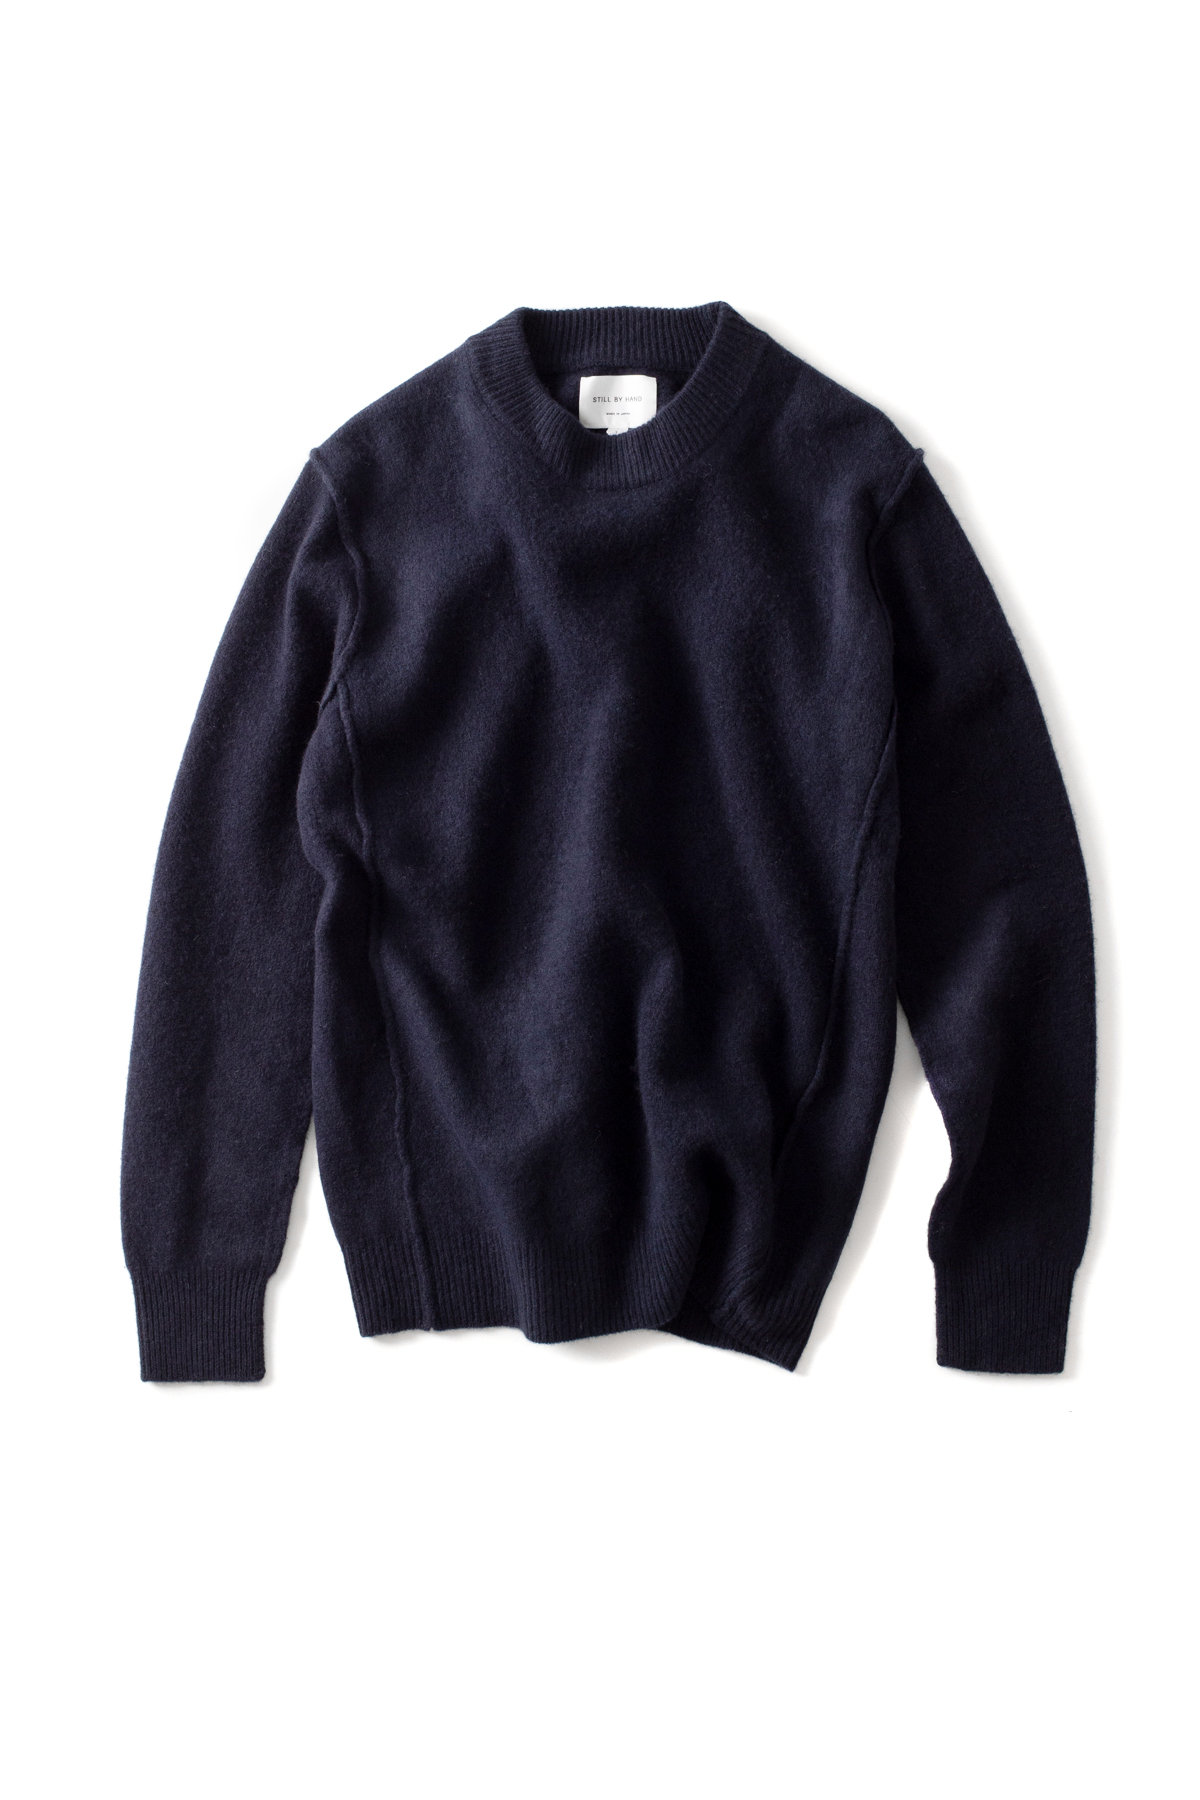 Still by Hand  : Shaggy Knit (Navy)